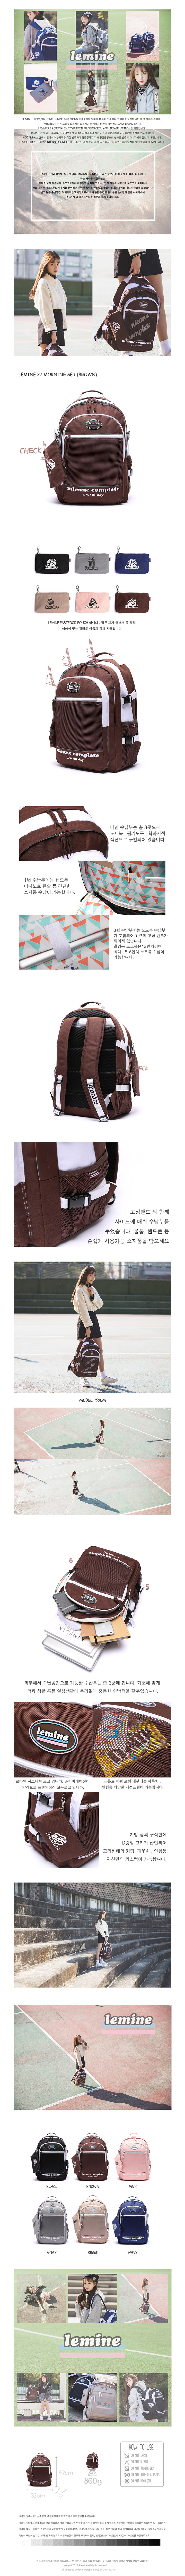 모닝세트브라운LE27BROWN_MORNINGSET850.jpg